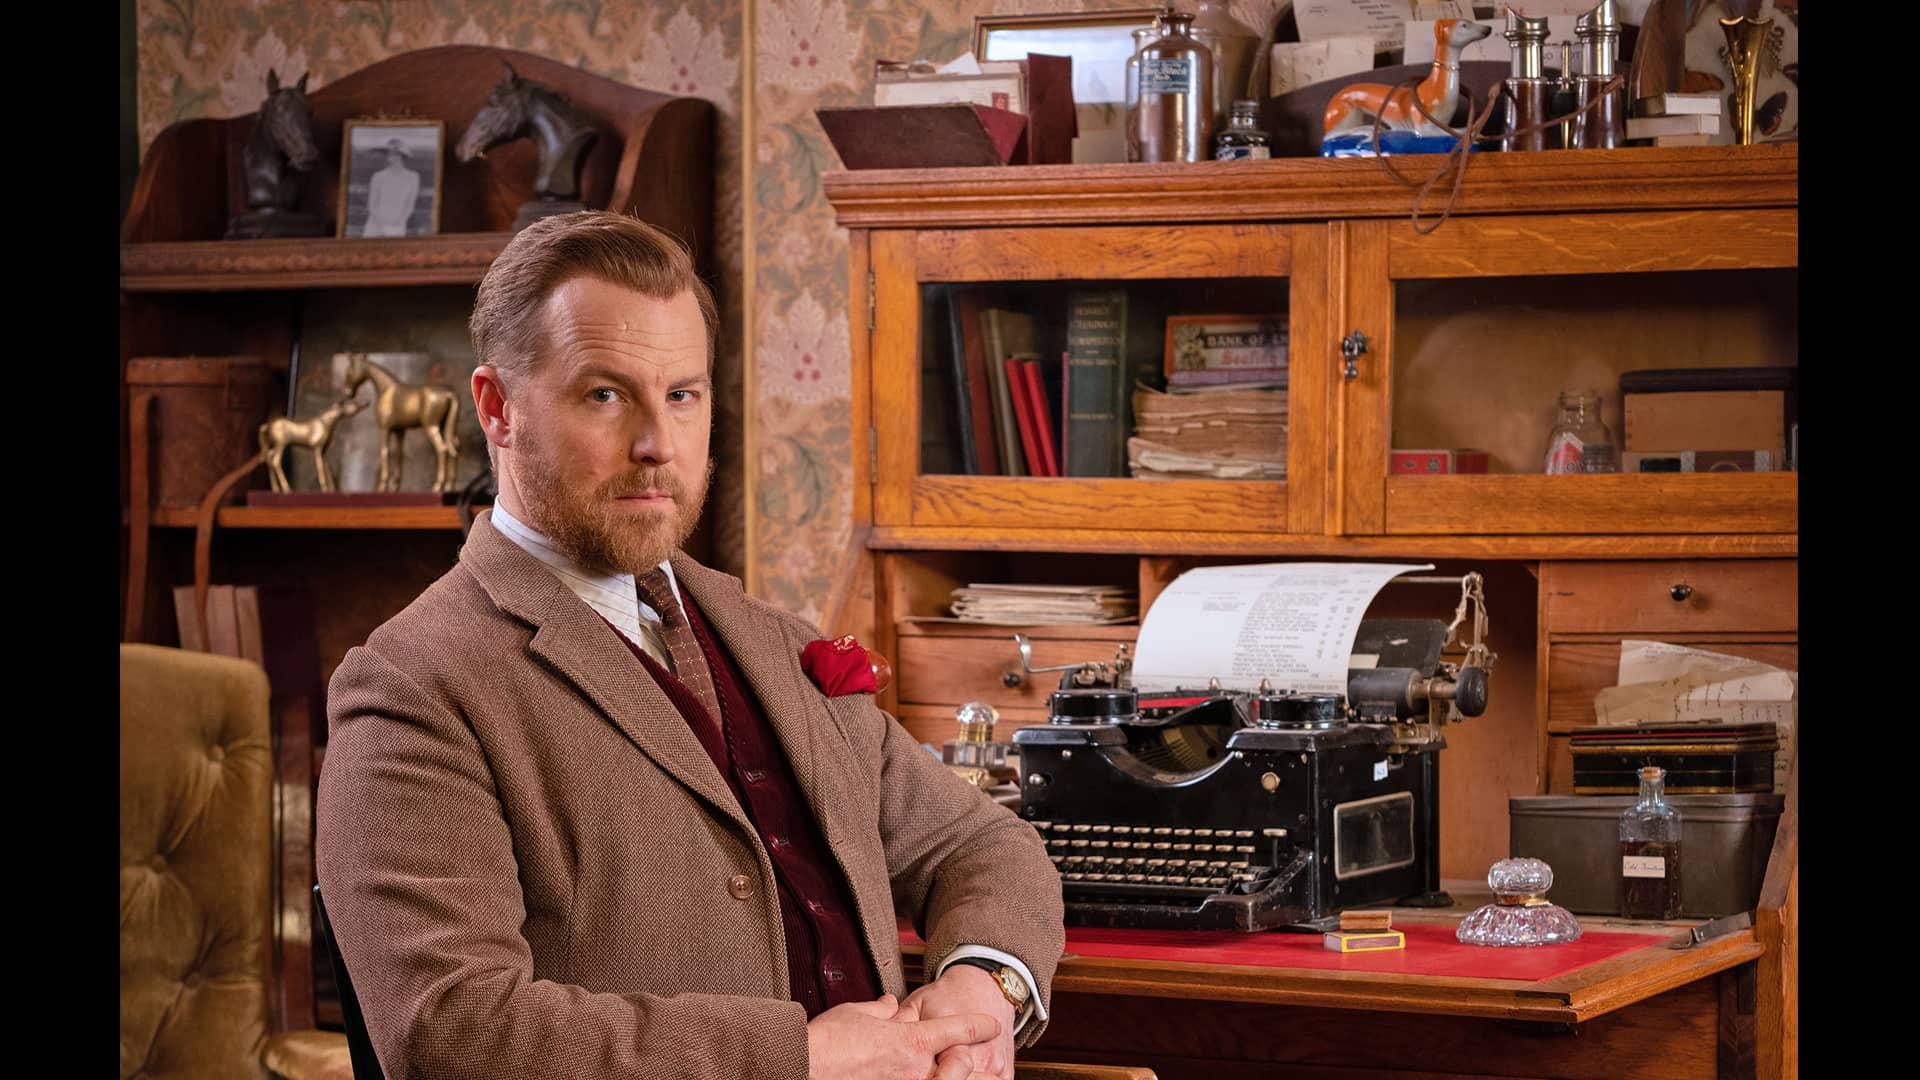 Samuel West as Siegfried Farnon in All Creatures Great and Small on Masterpiece on PBS